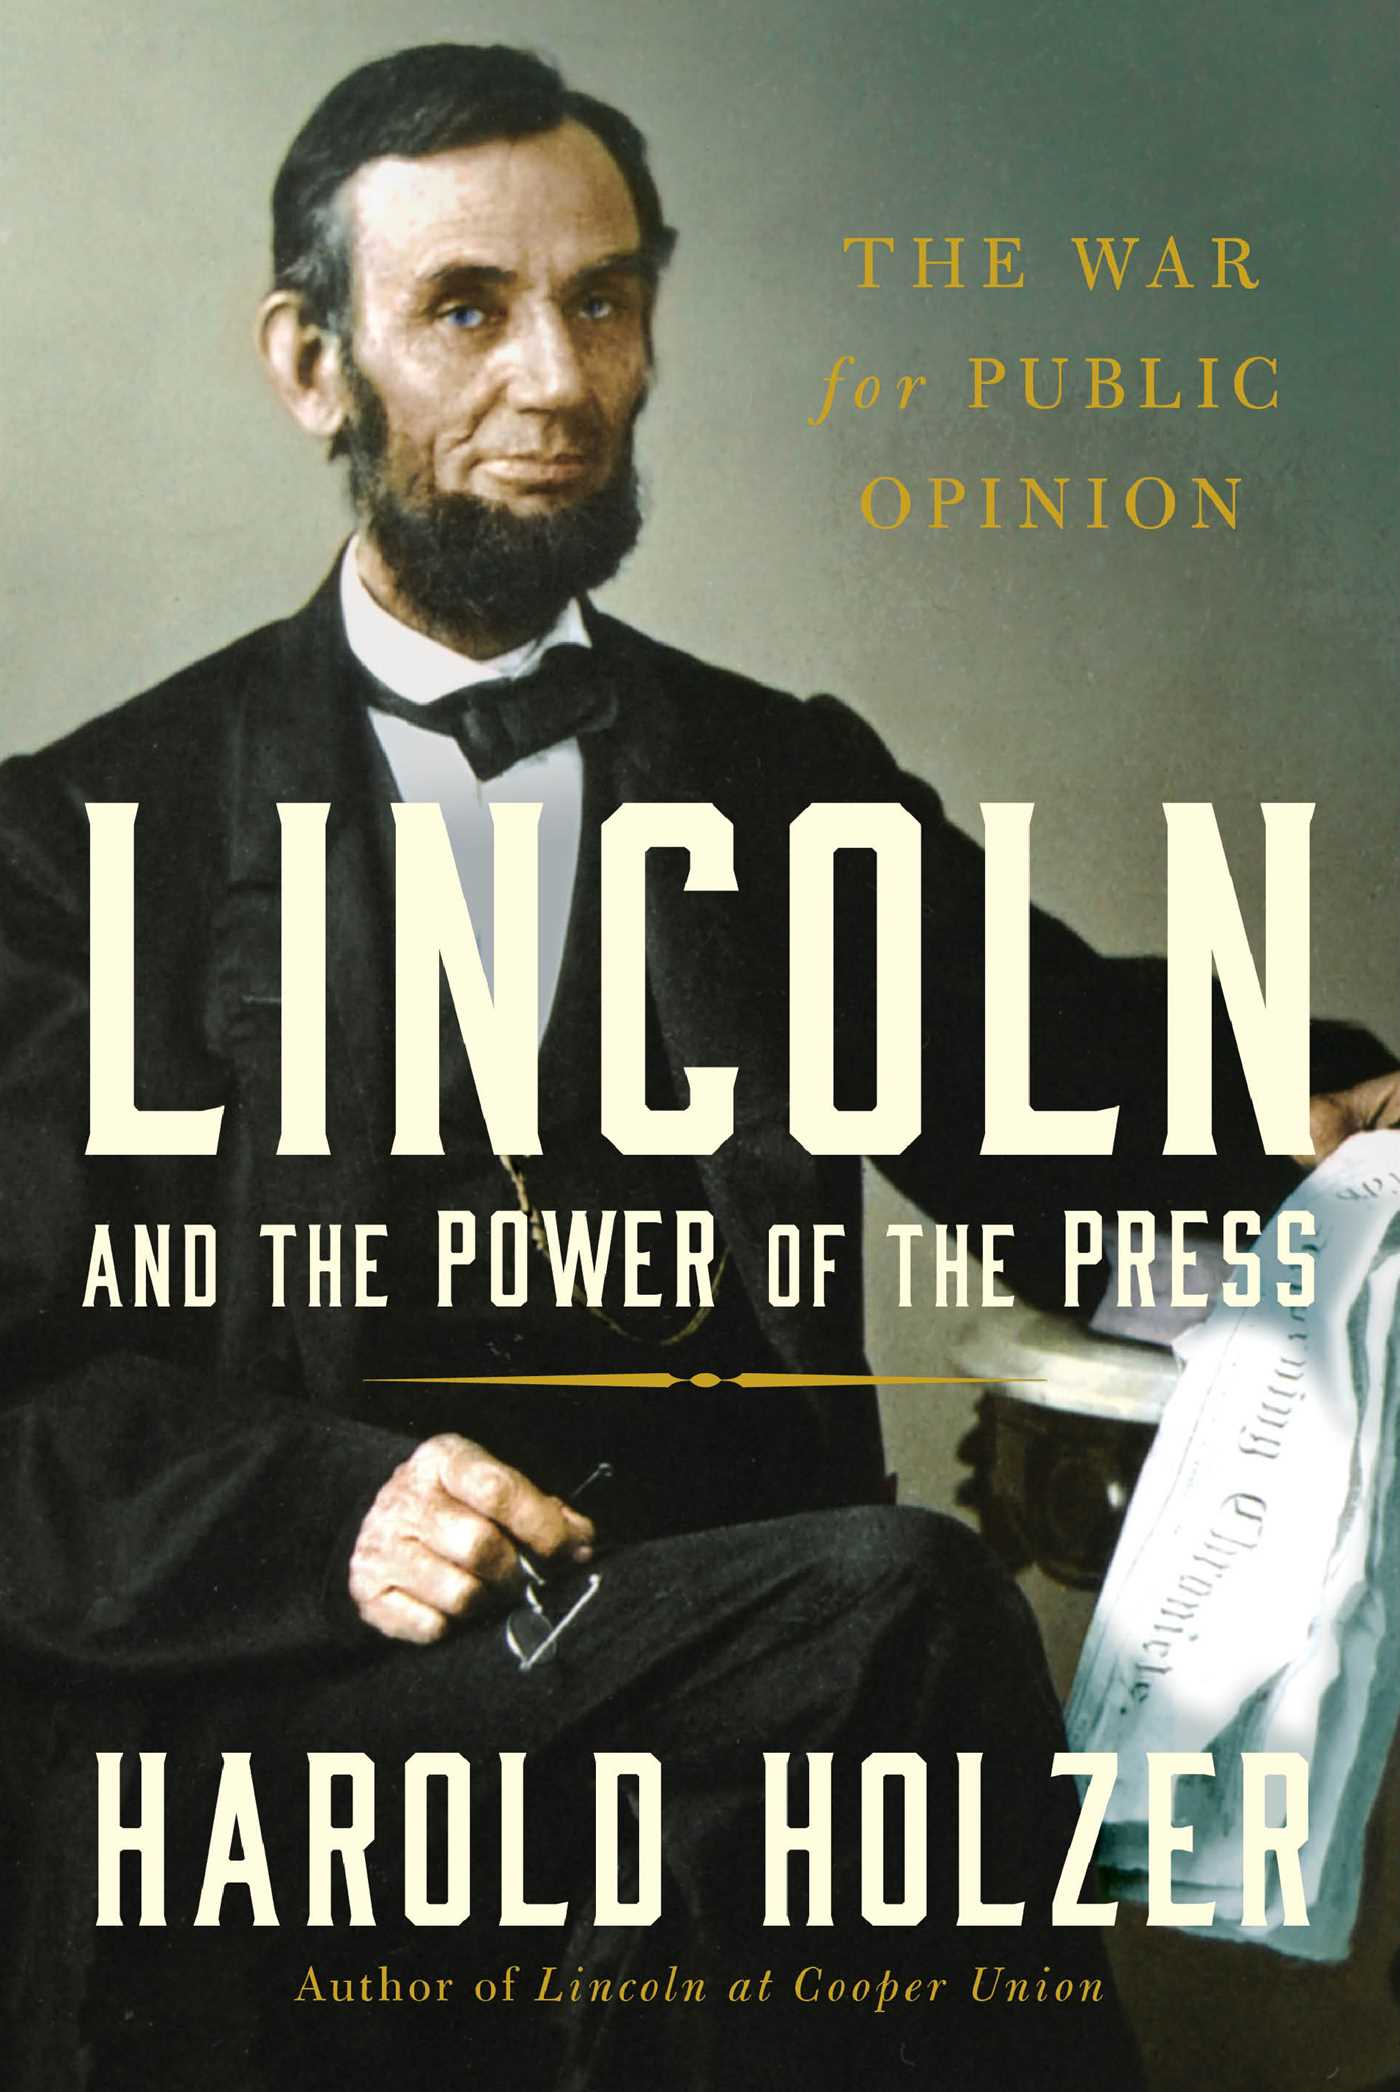 Lincoln-and-the-power-of-the-press-9781439192719_hr